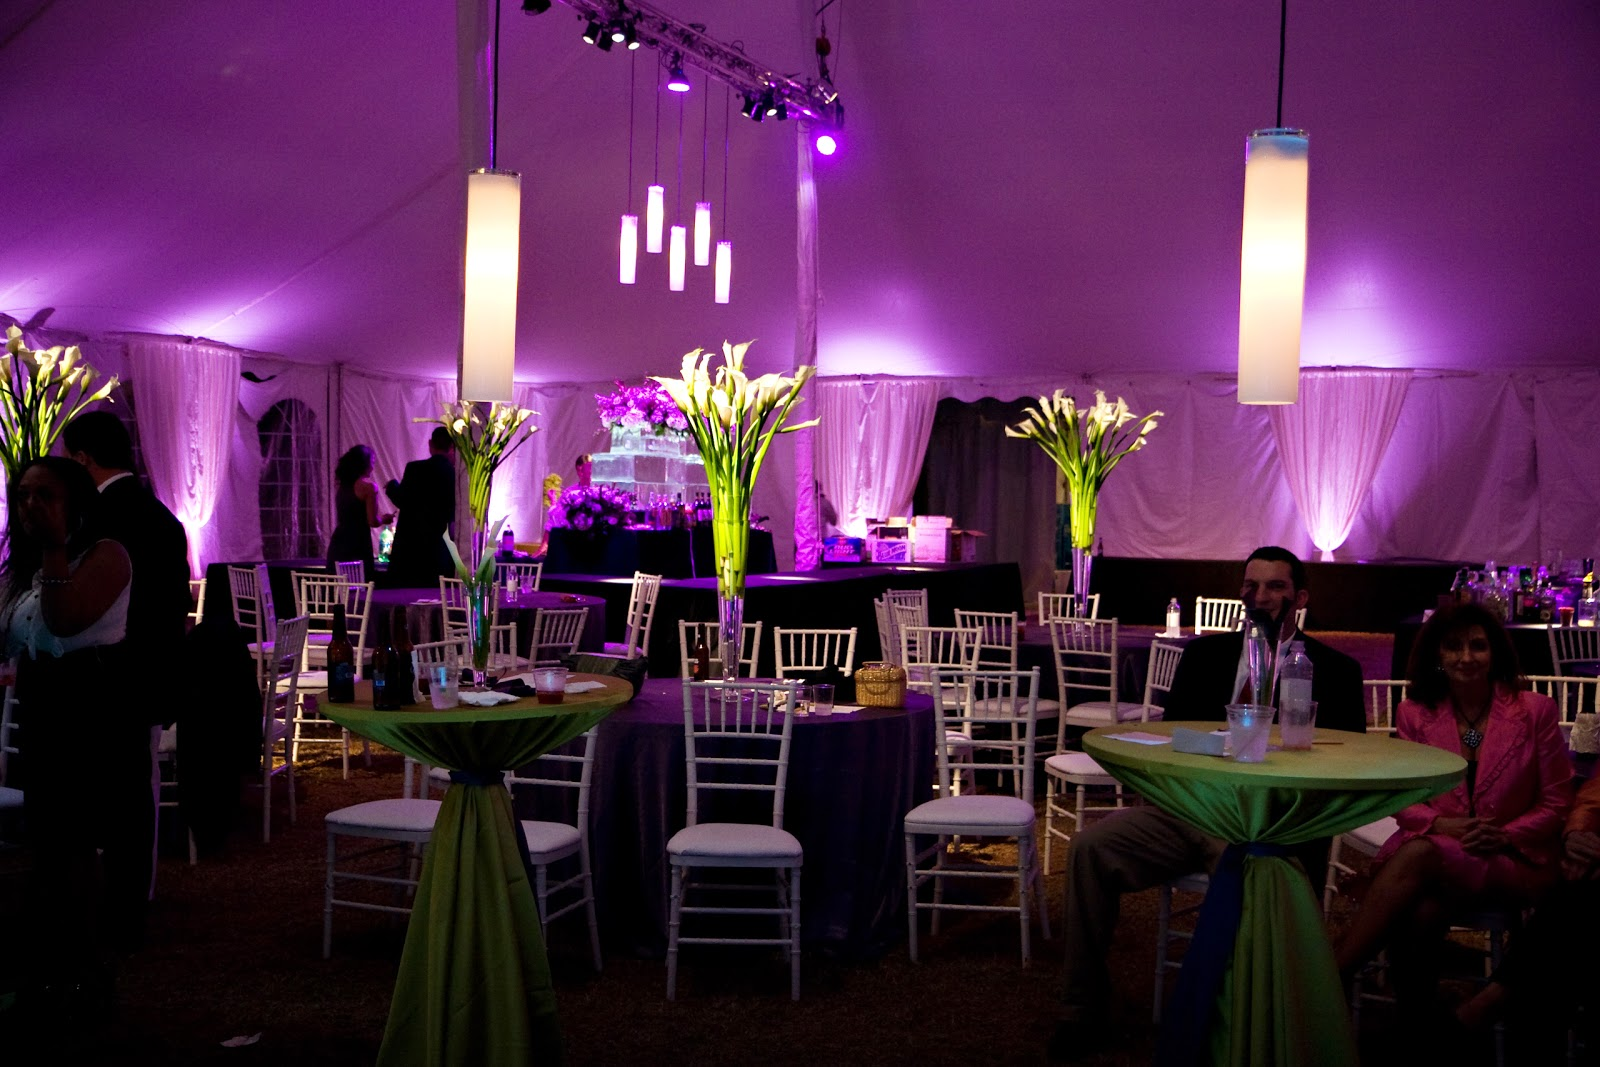 Wedding Receptions Tents Decoration & RainingBlossoms: Wedding Receptions Tents Decoration